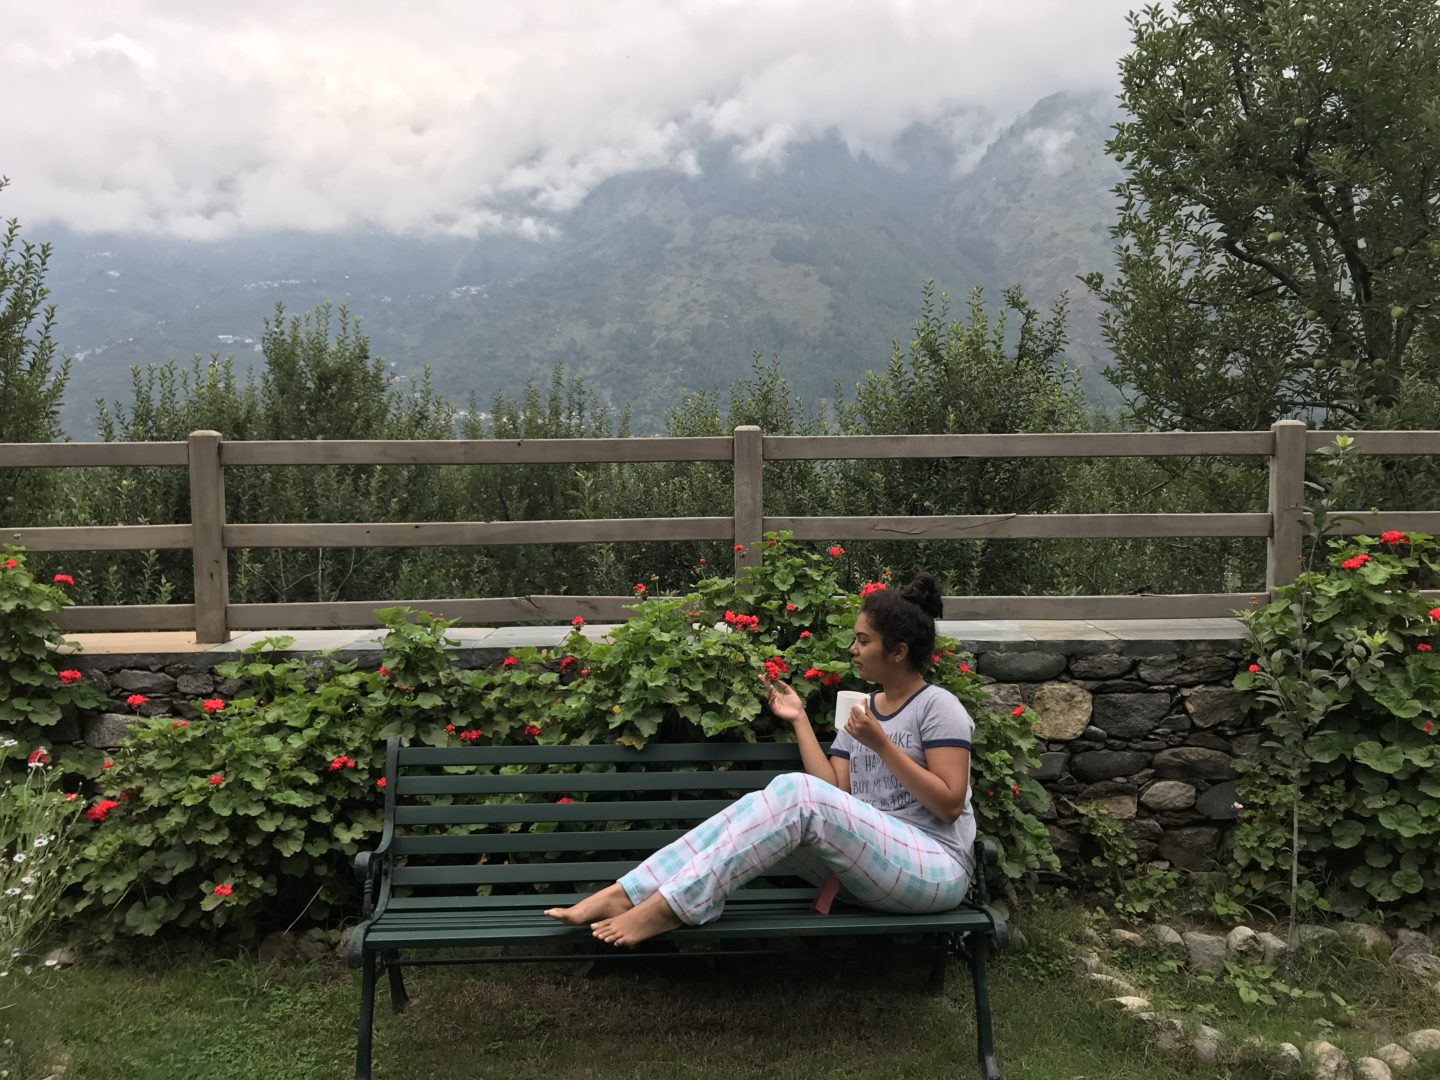 thatgoangirl luxury resort manali